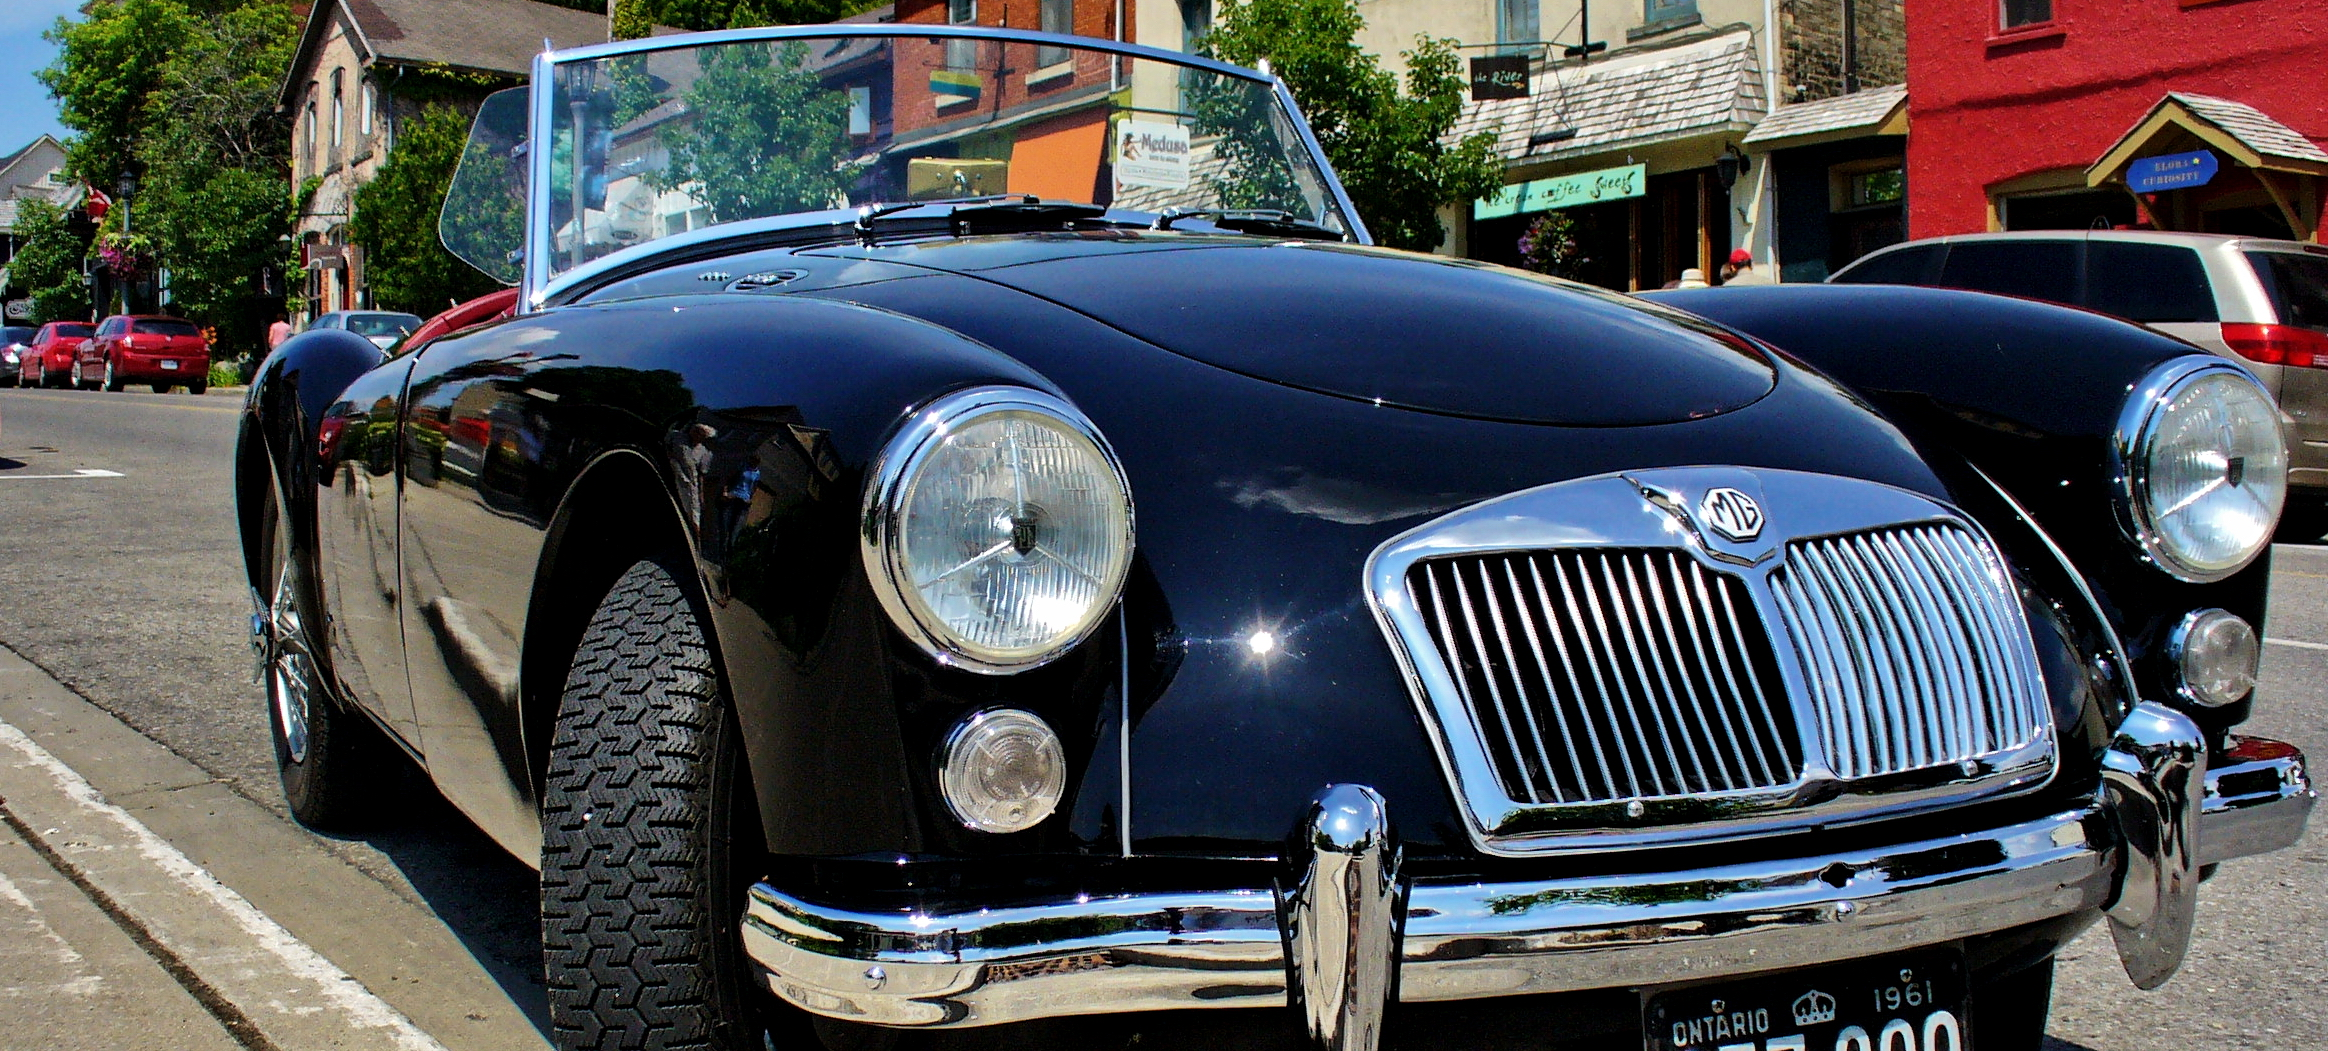 Old British MG in Black